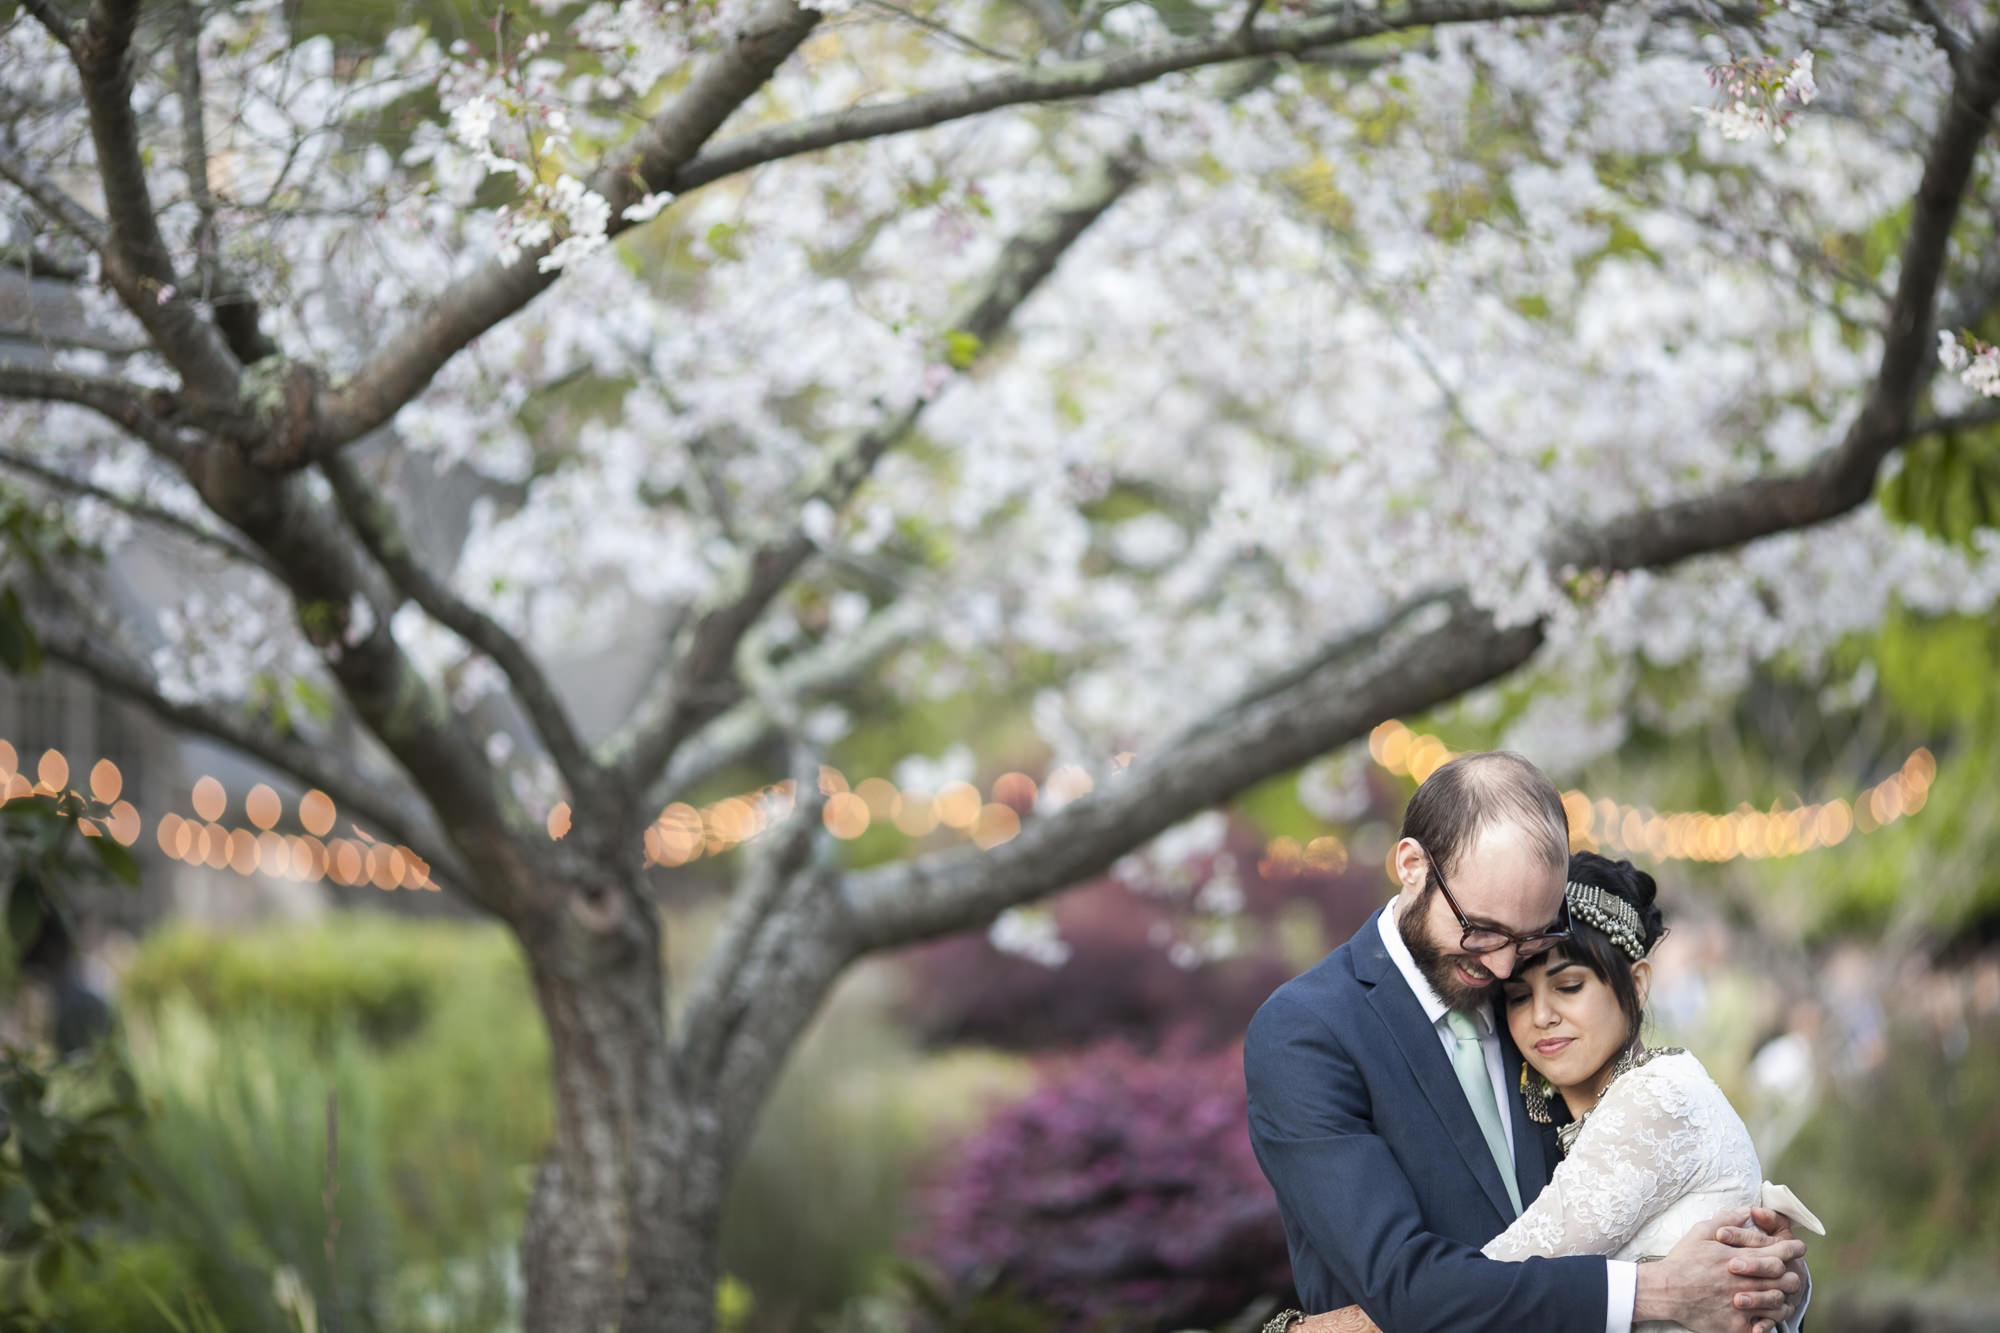 Wedding couple snuggle in front of blooming cherry blossom tree